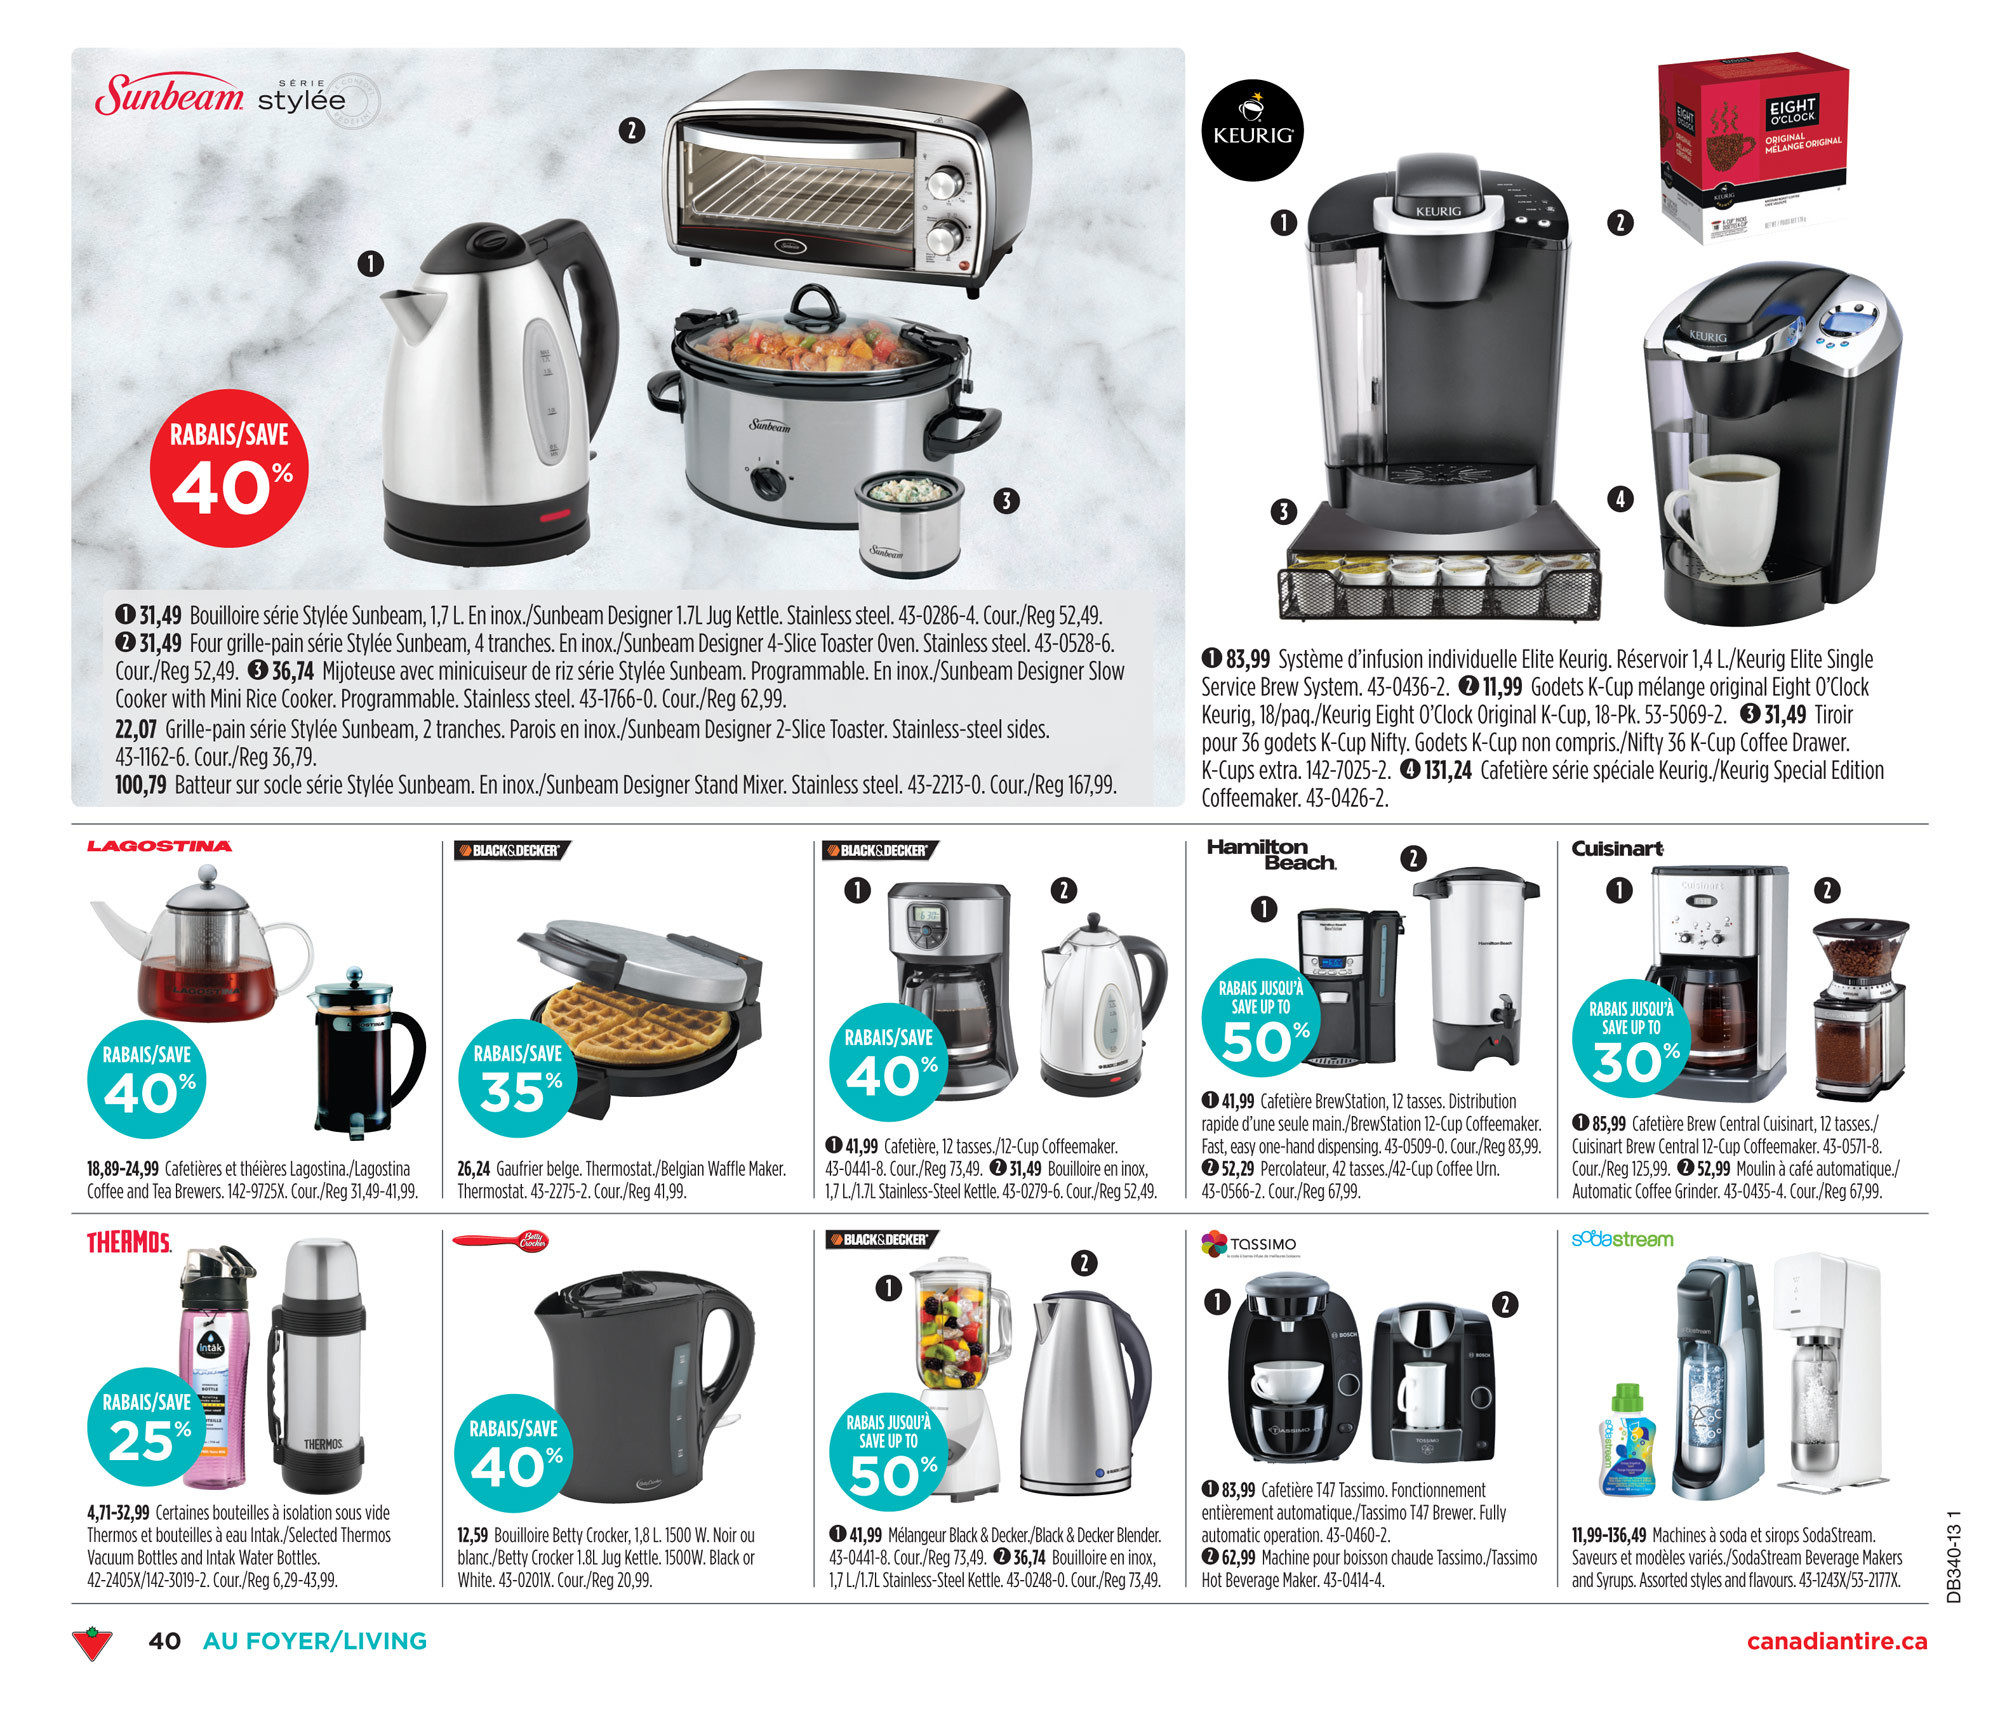 Canadian Tire Weekly Flyer Weekly Flyer Sep 26 Oct 3